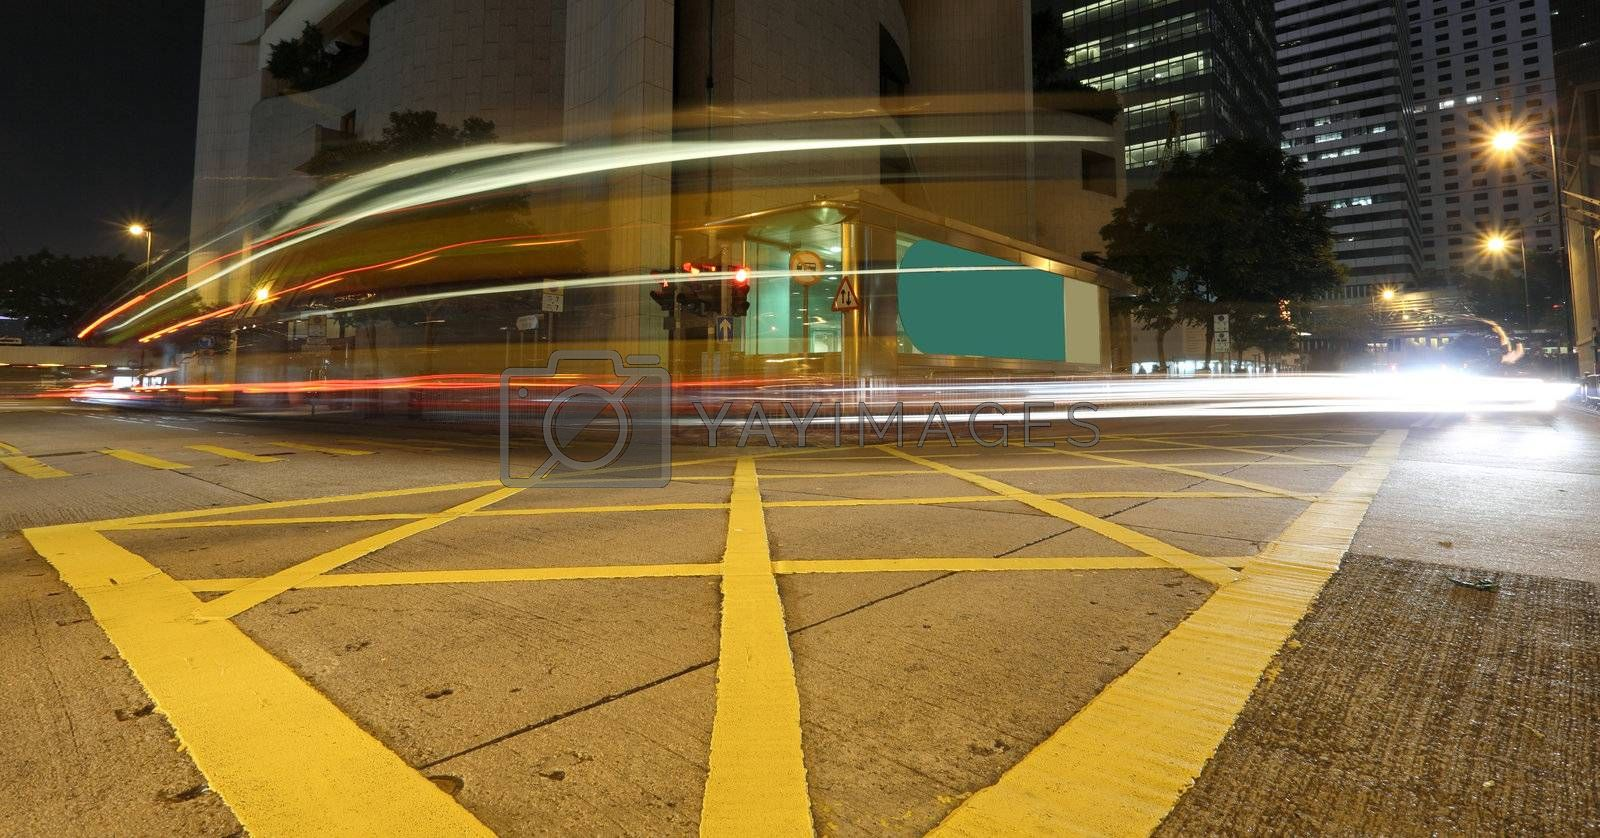 Fast moving bus at night by leungchopan